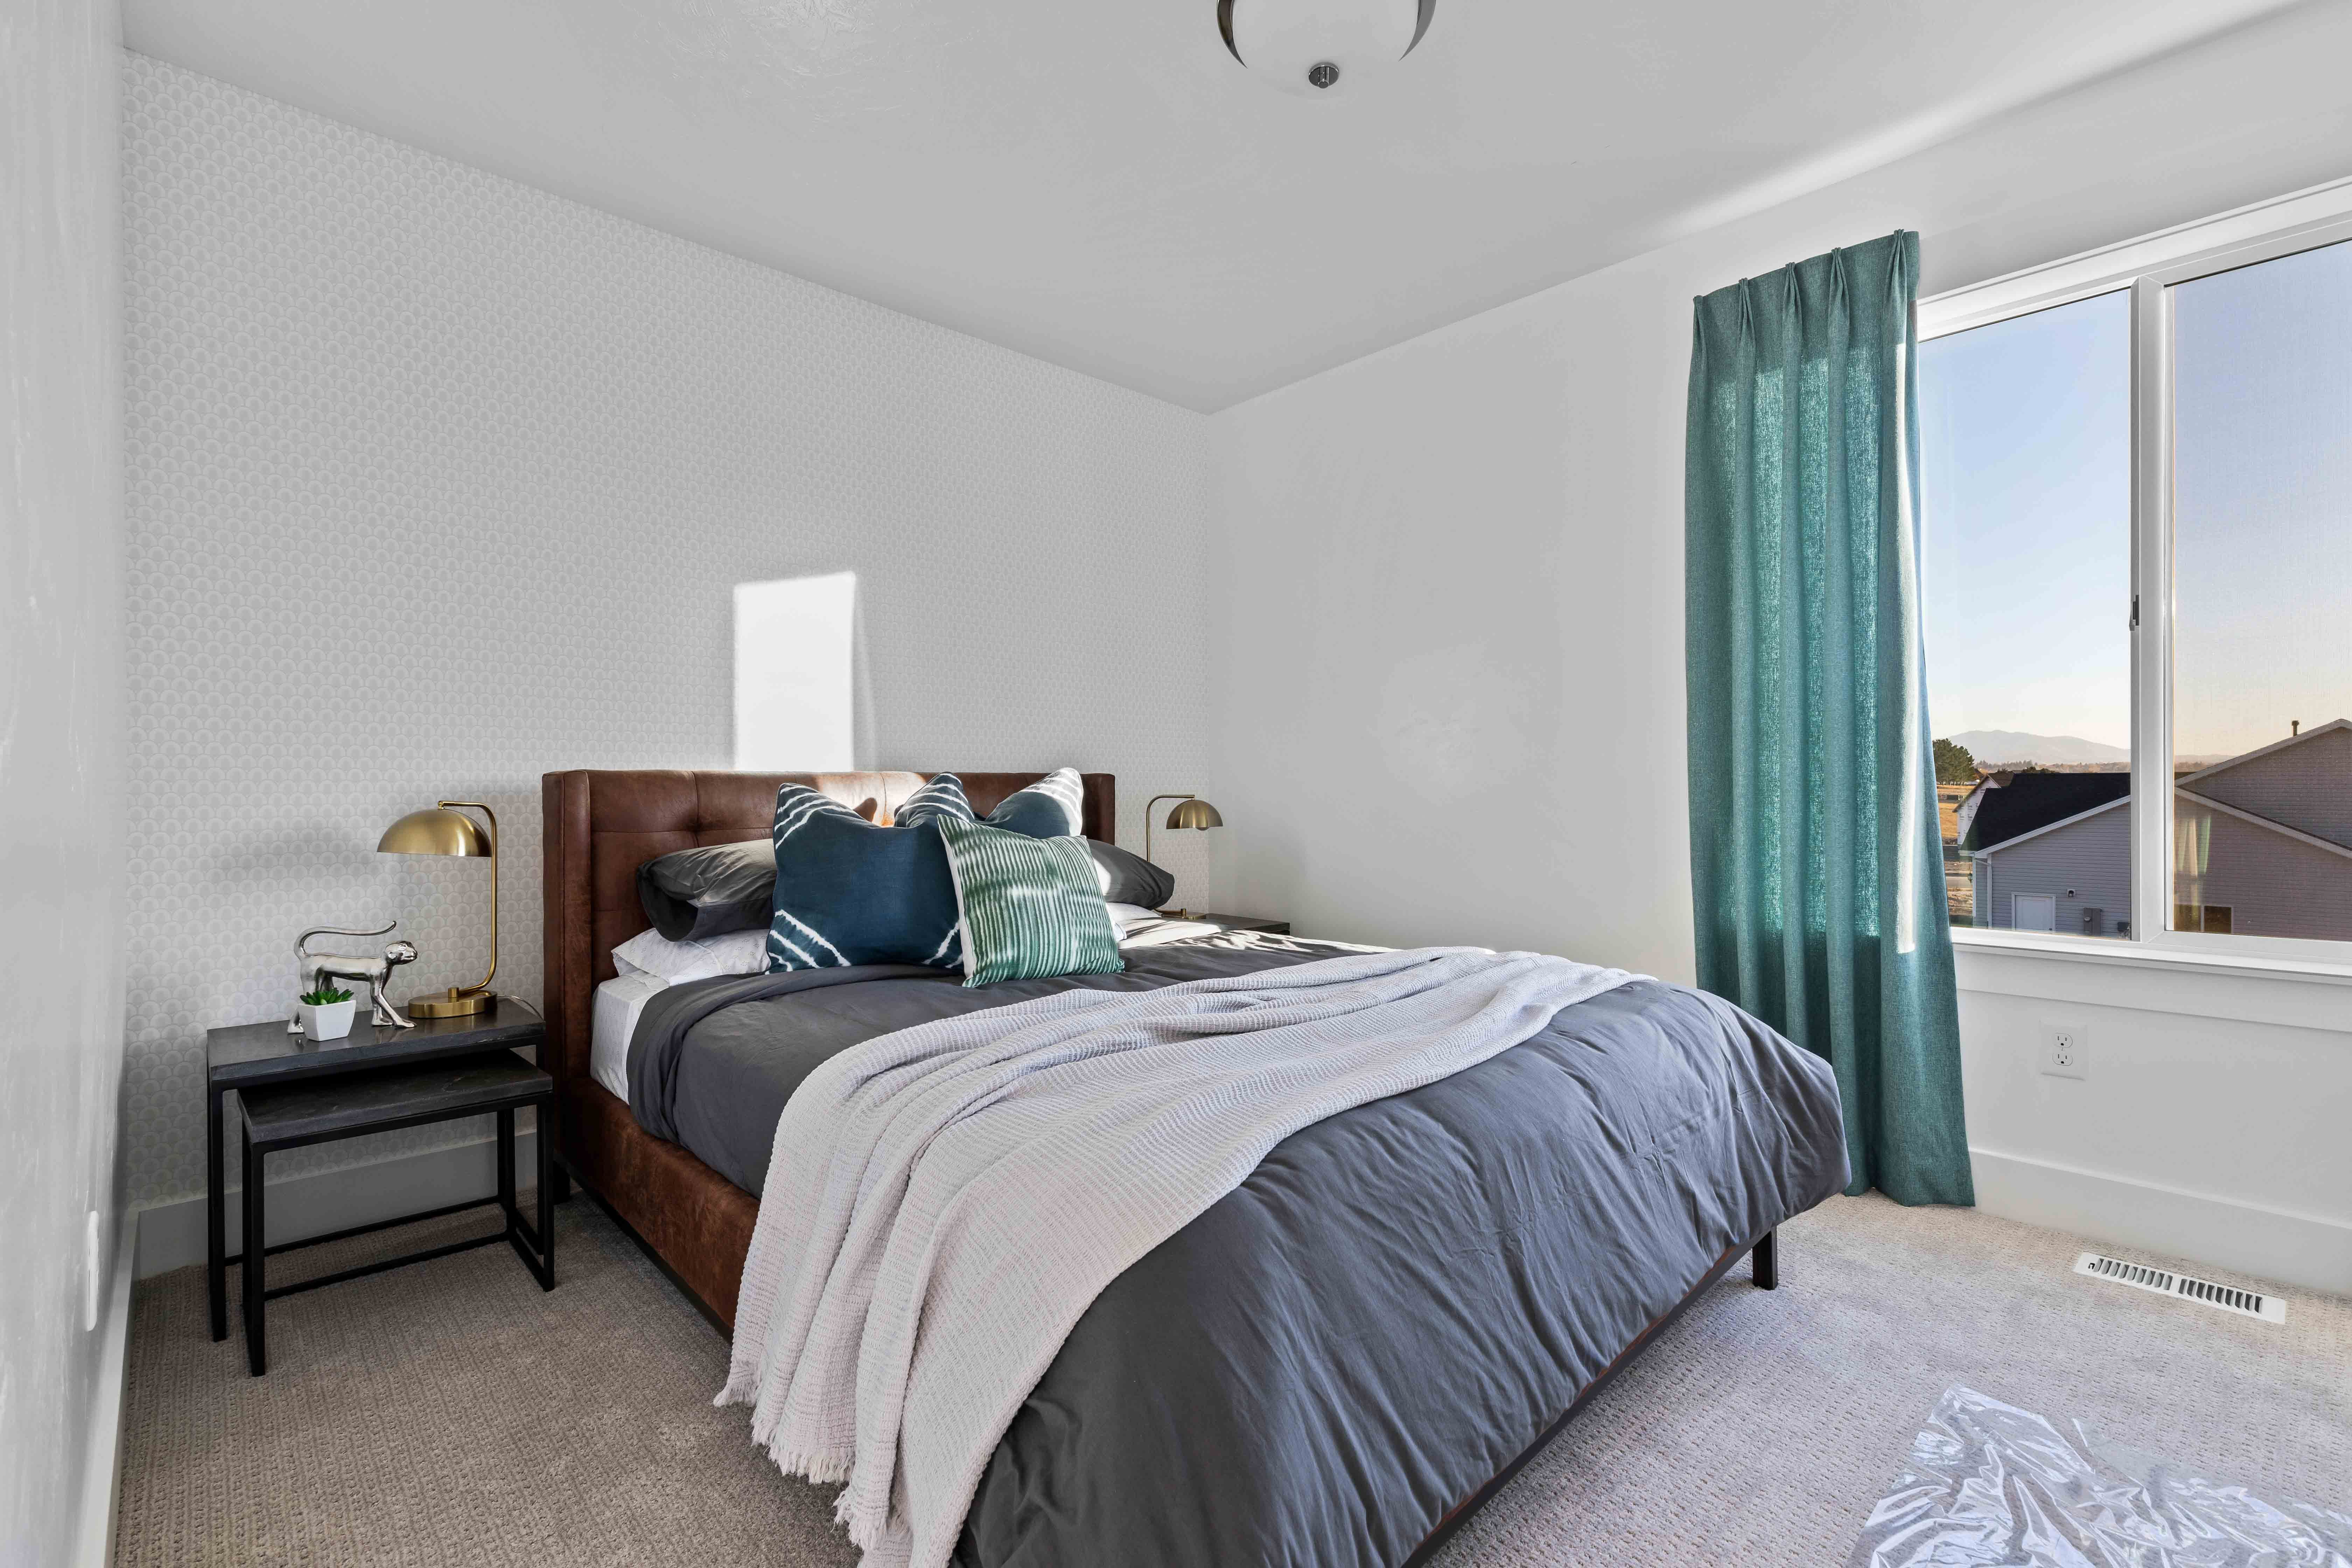 Bedroom featured in the Sumac (SOG)  By Visionary Homes in Logan, UT